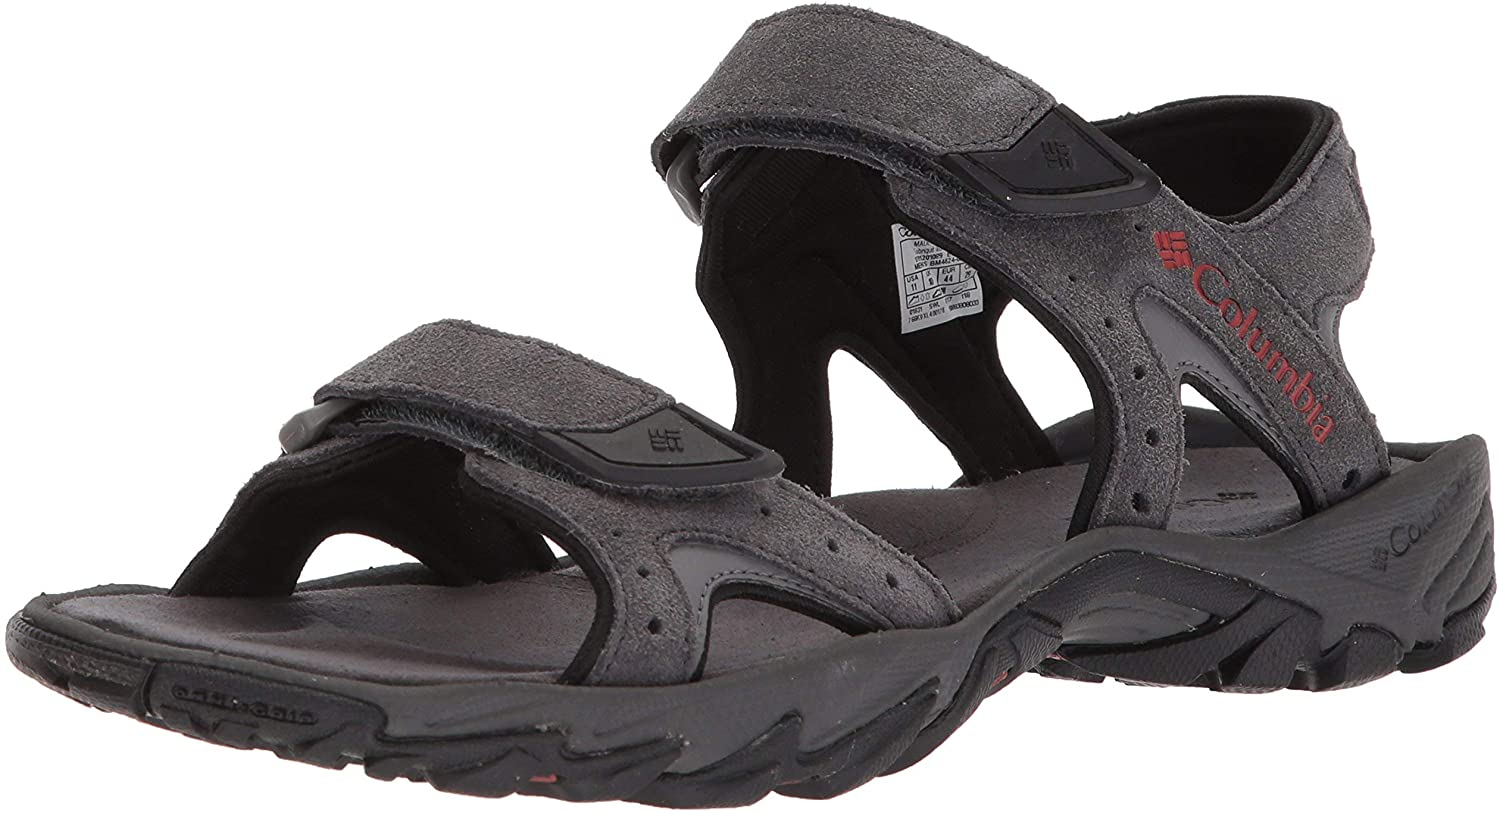 Columbia Men's Santiam 2 Strap All Terrain Sandal